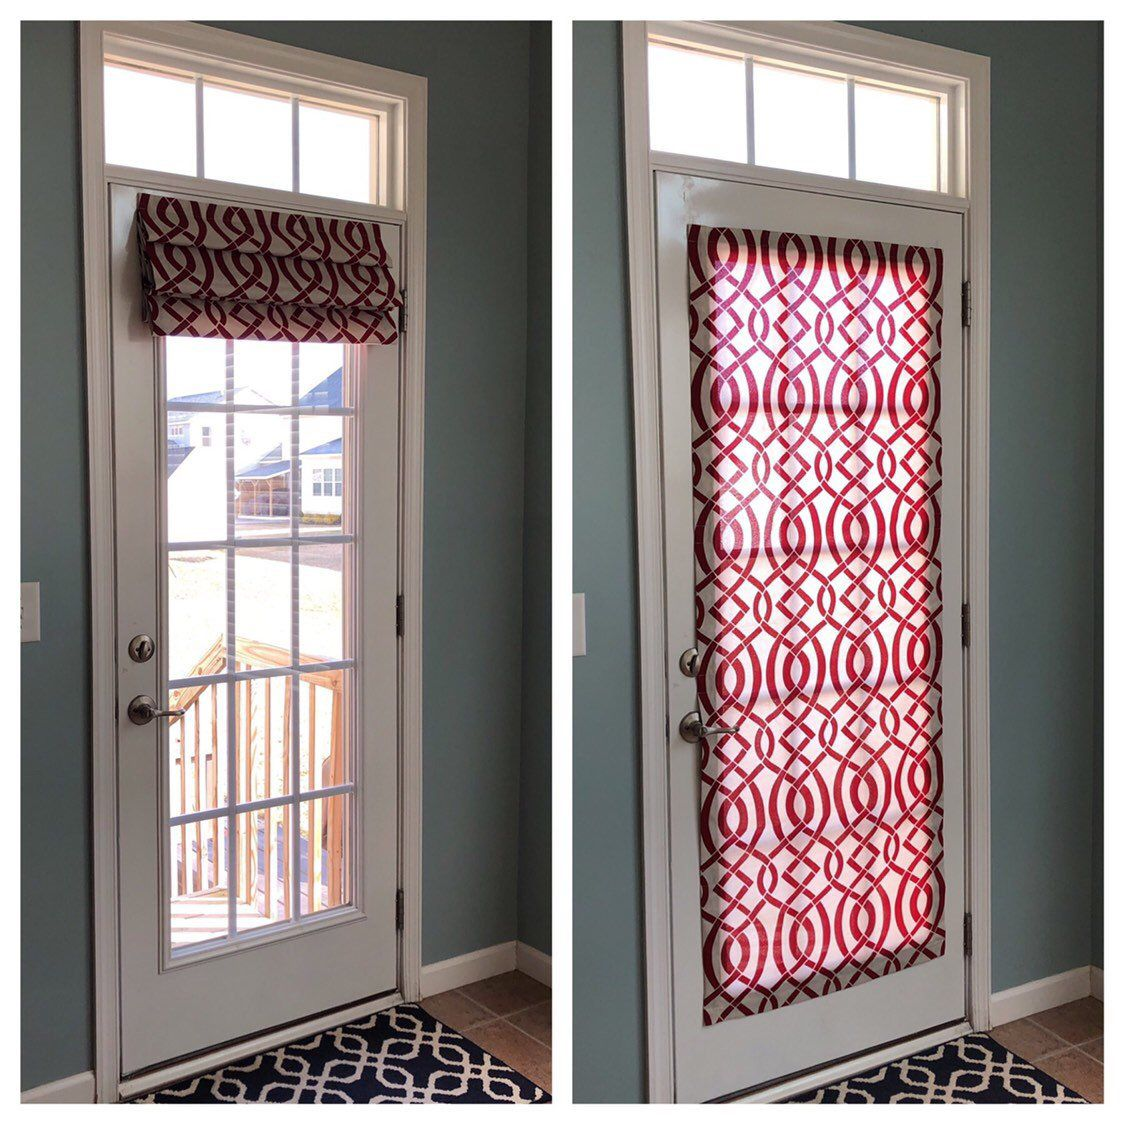 Magnetic Shade No Hardware Fits Doors With Window Etsy Door Coverings Front Doors With Windows Door Curtains Diy